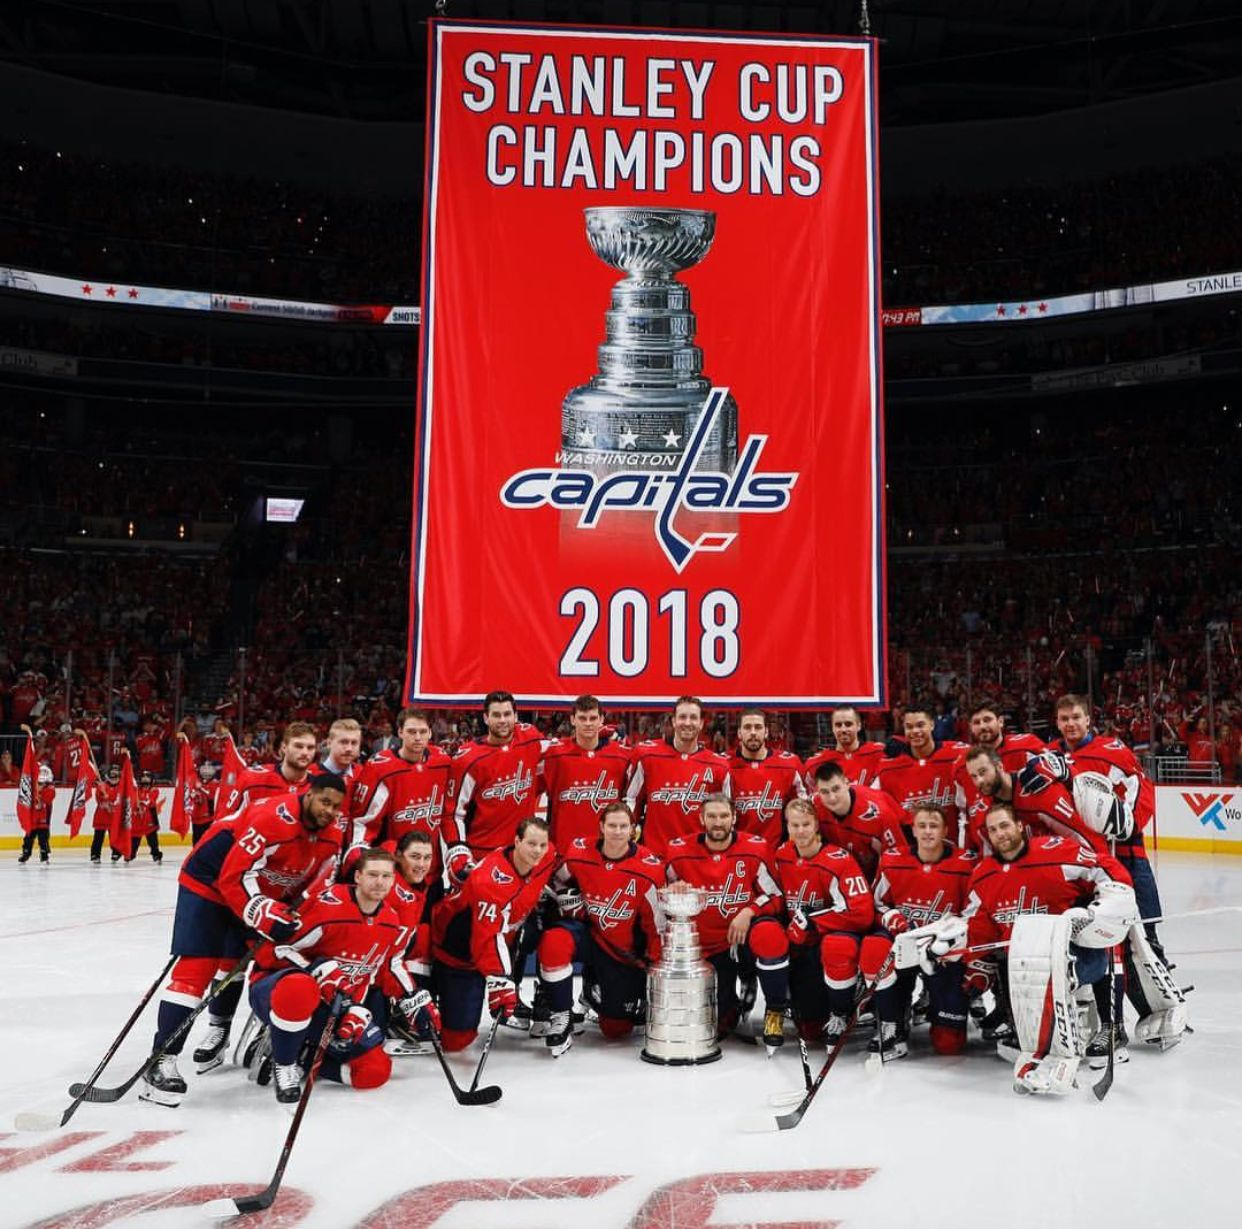 Pin By David Hill On Wood Projects Washington Capitals Hockey Capitals Hockey Washington Capitals Stanley Cup